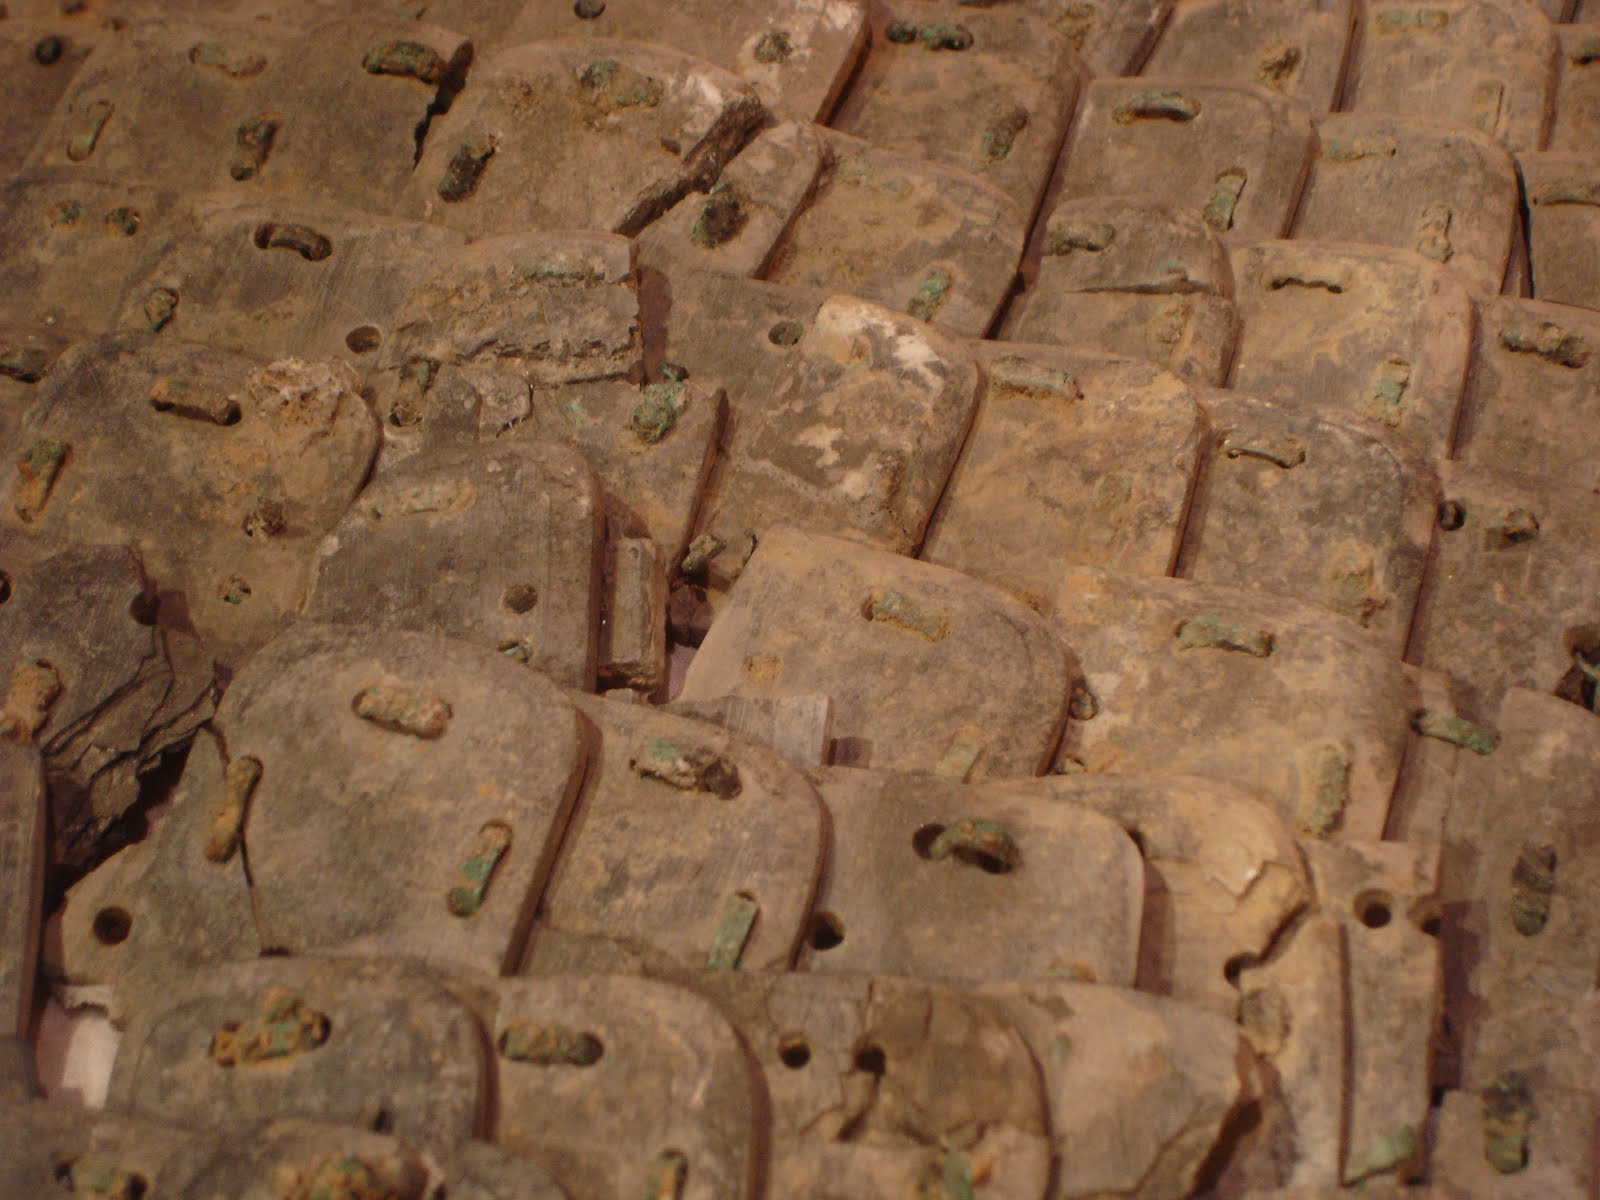 Blog Archive » Stone armor pit at Terracotta Army tomb excavated